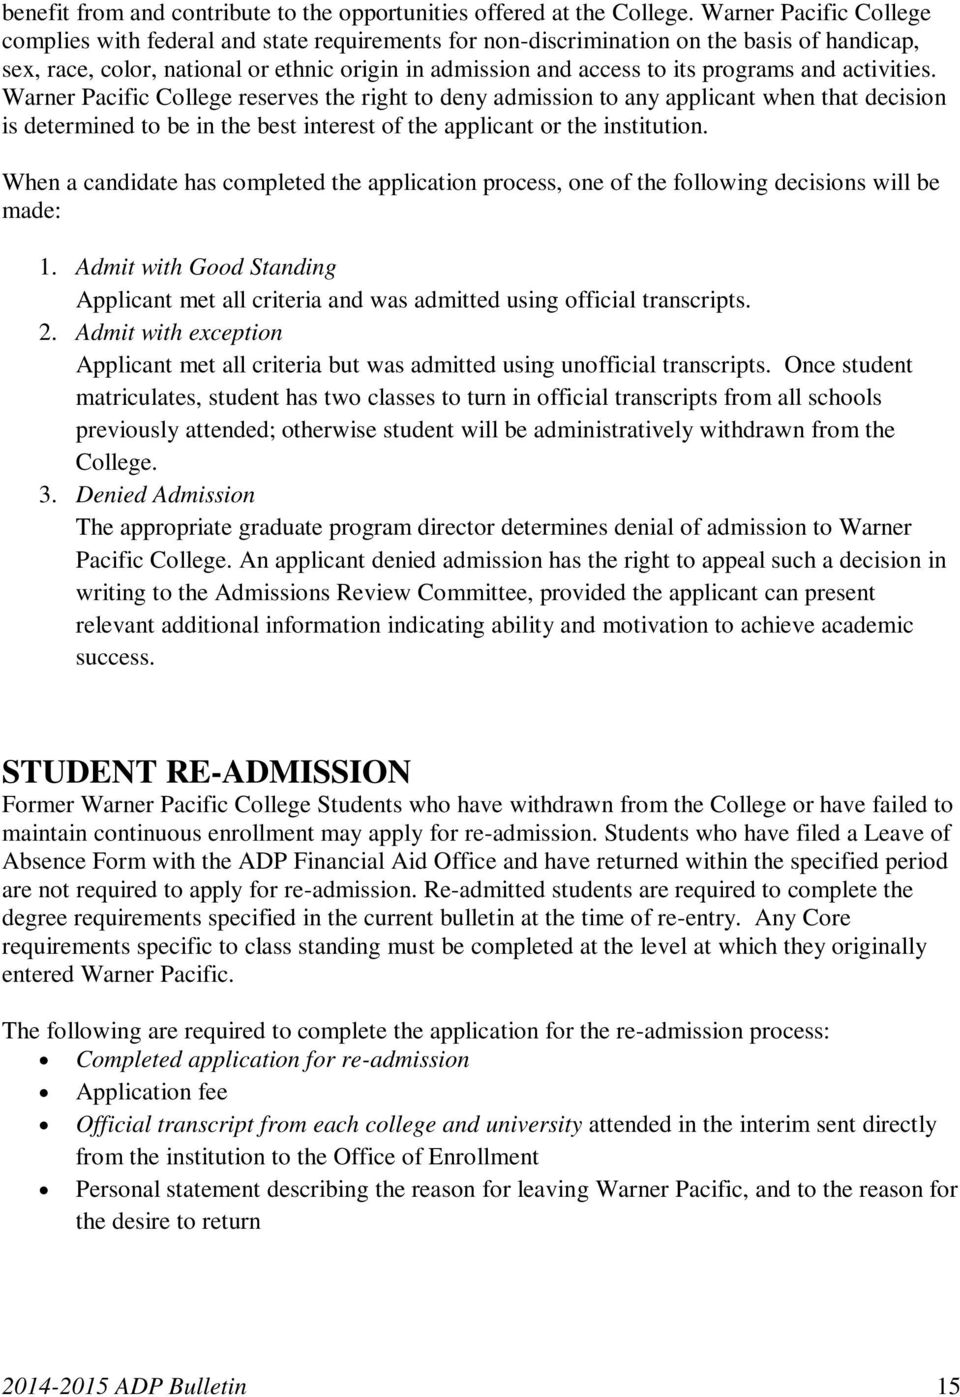 programs and activities. Warner Pacific College reserves the right to deny admission to any applicant when that decision is determined to be in the best interest of the applicant or the institution.